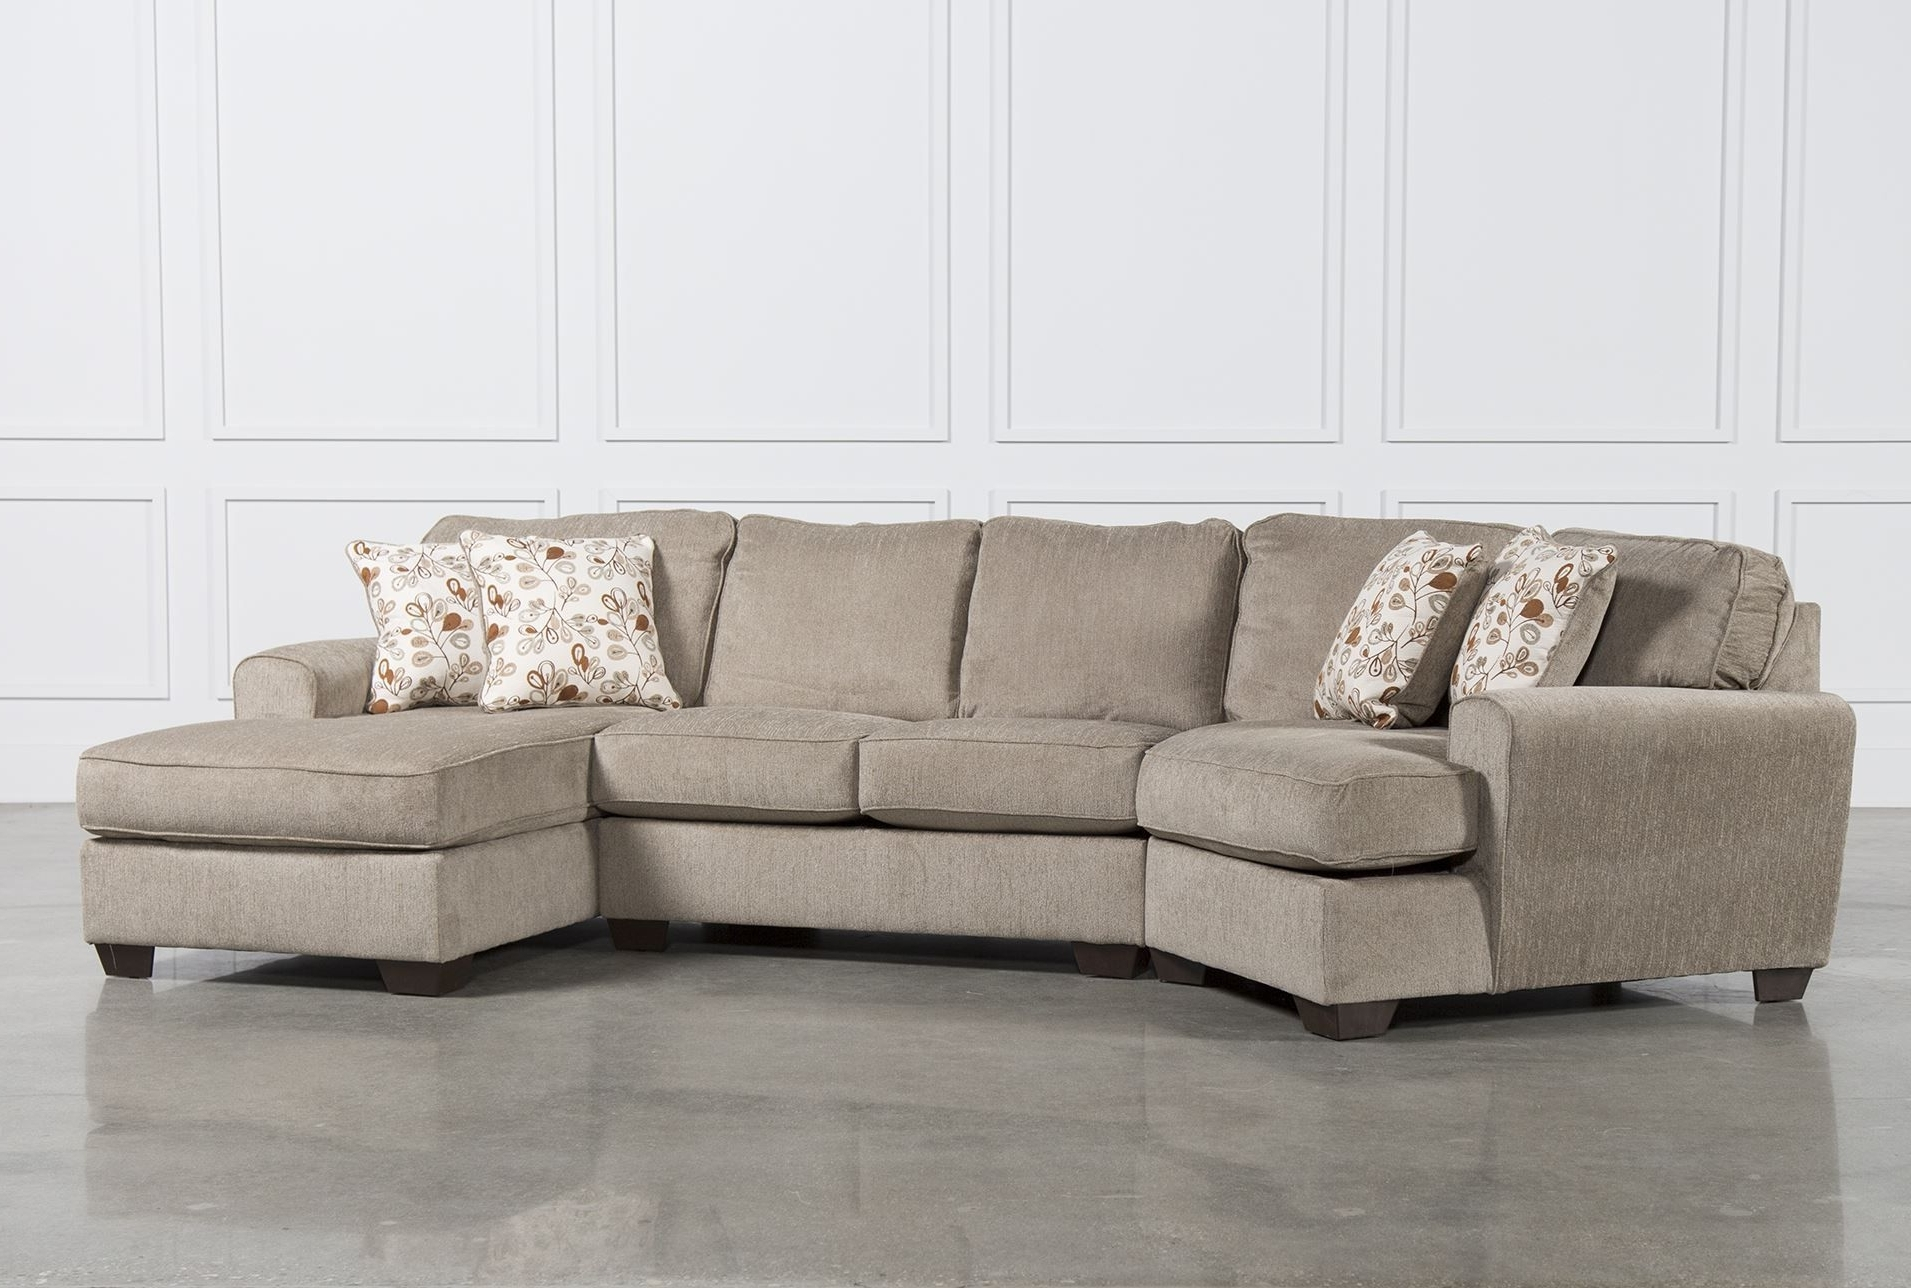 Mon With Regard To 3 Piece Sectionals With Chaise (View 11 of 15)